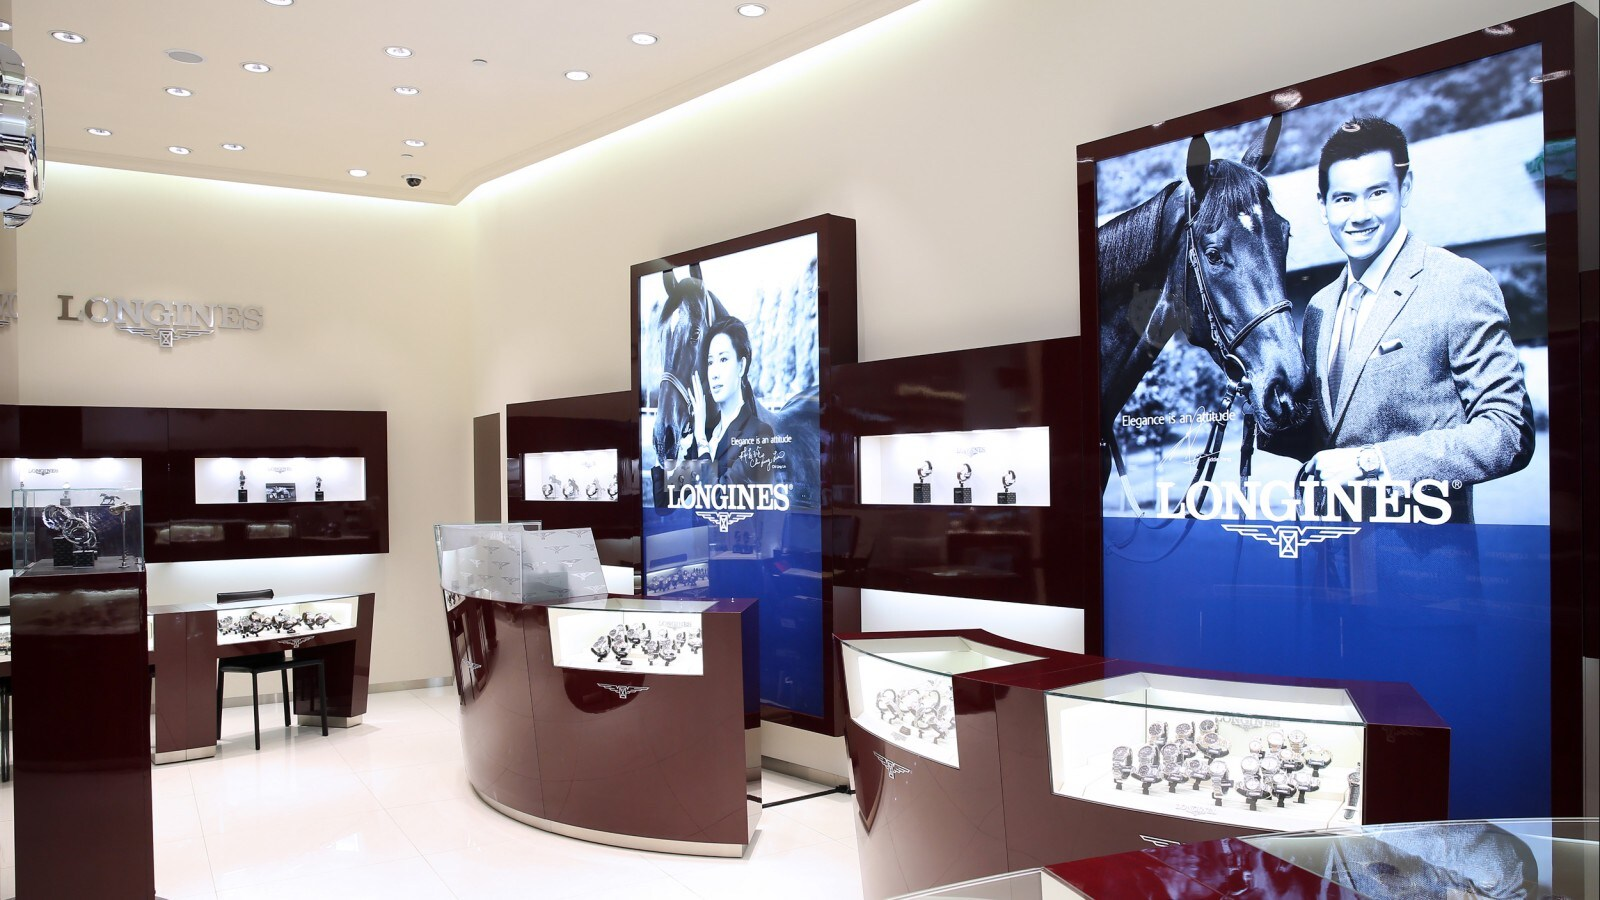 Longines opened its third boutique store in Taiwan.